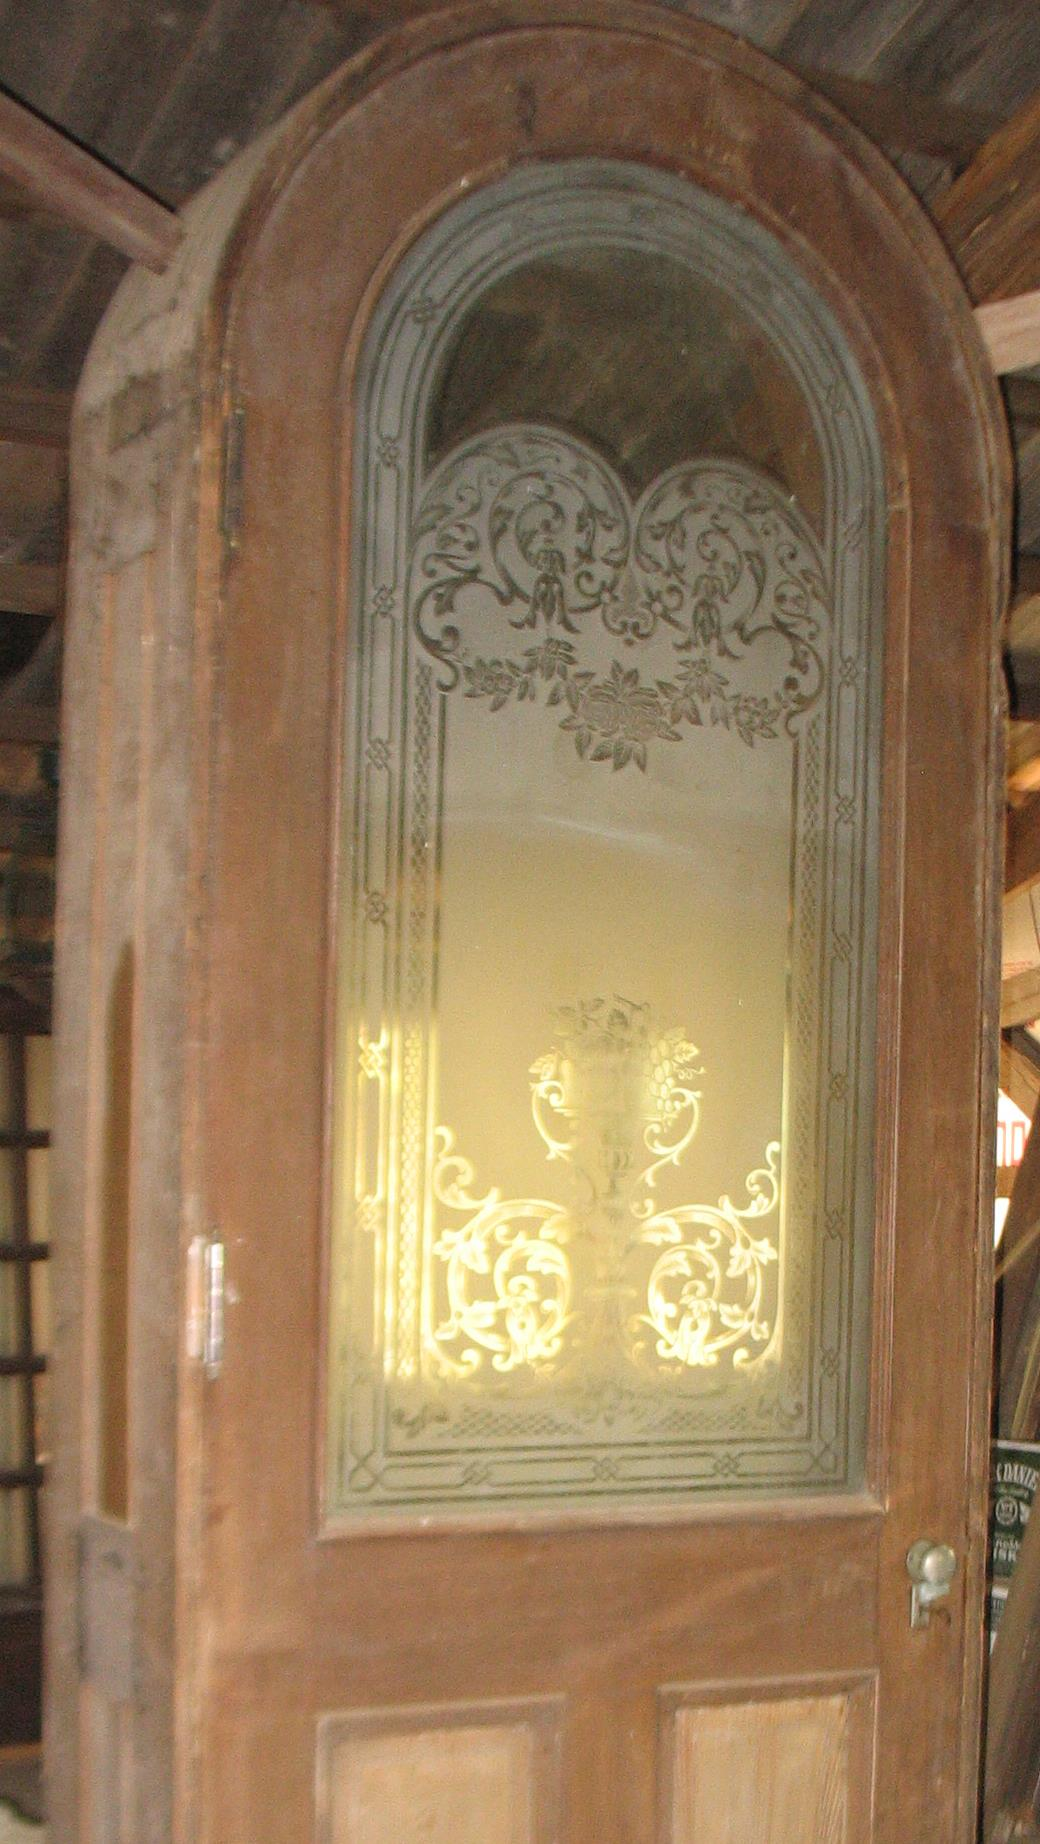 This is the interior view of the door from inside the house.